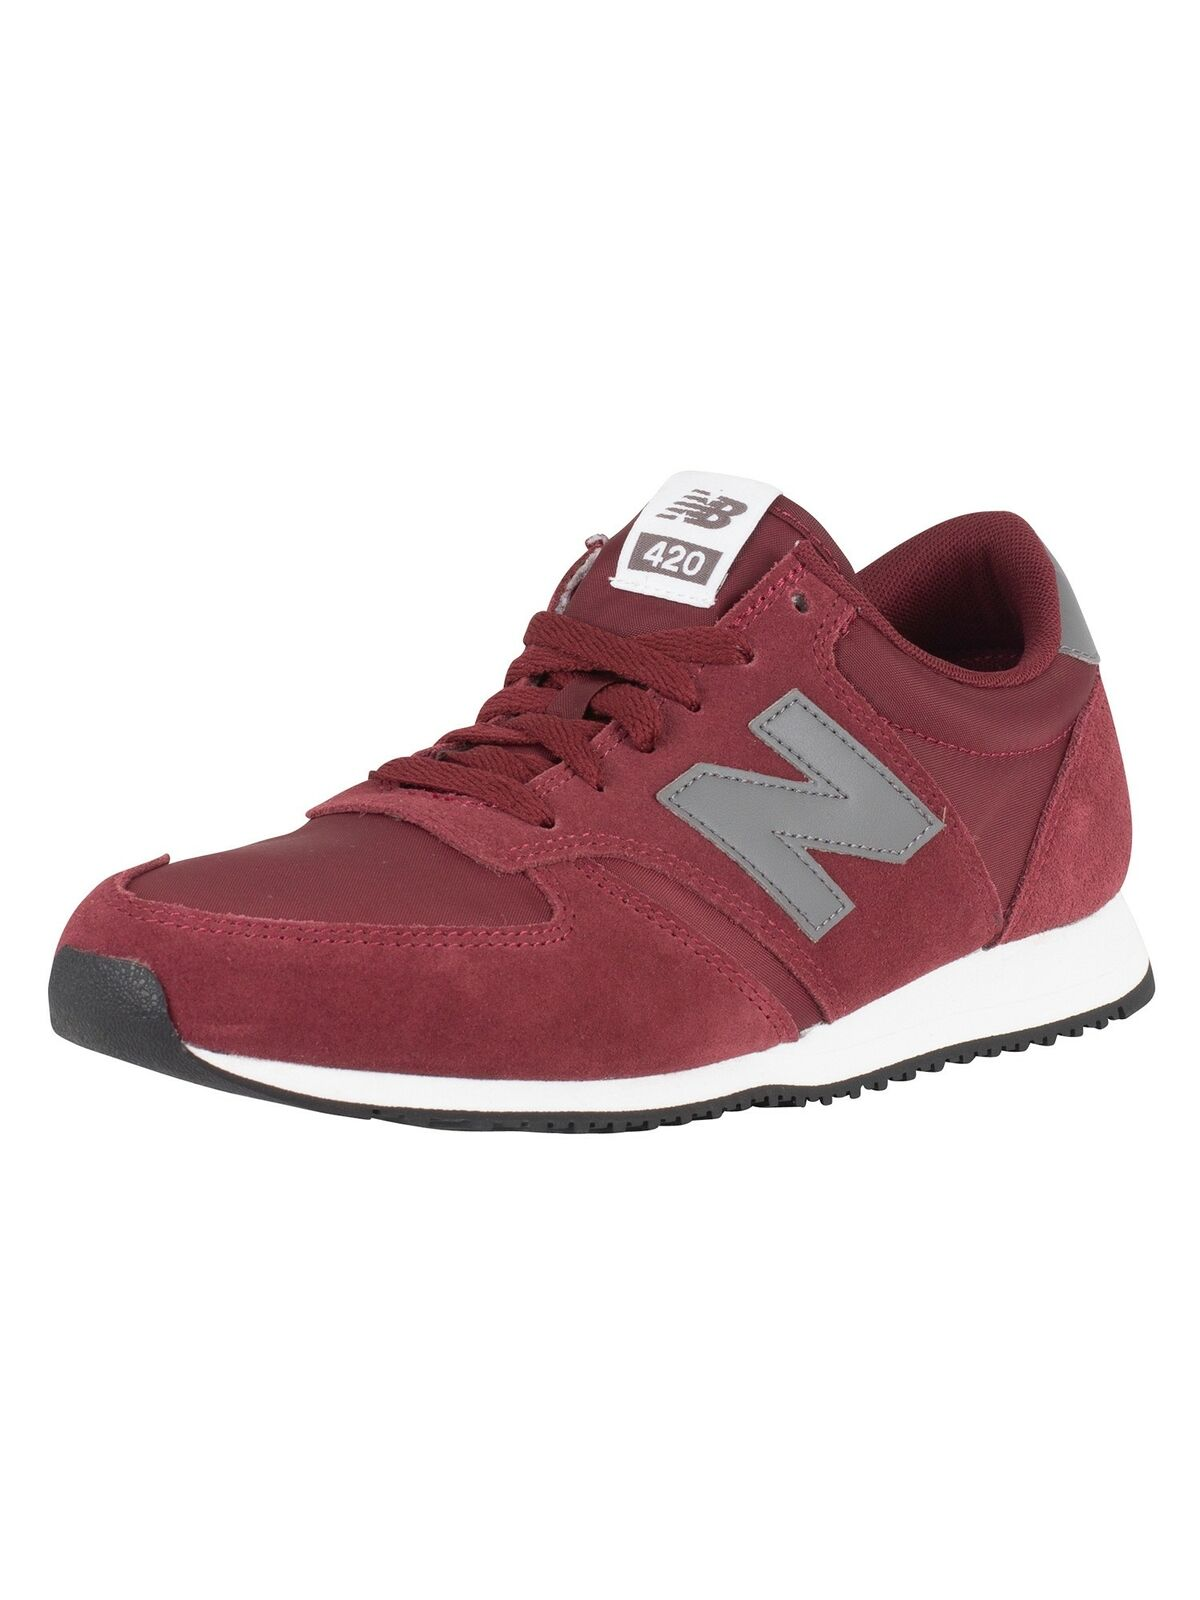 New Balance Homme 420 trainers en daim, rouge